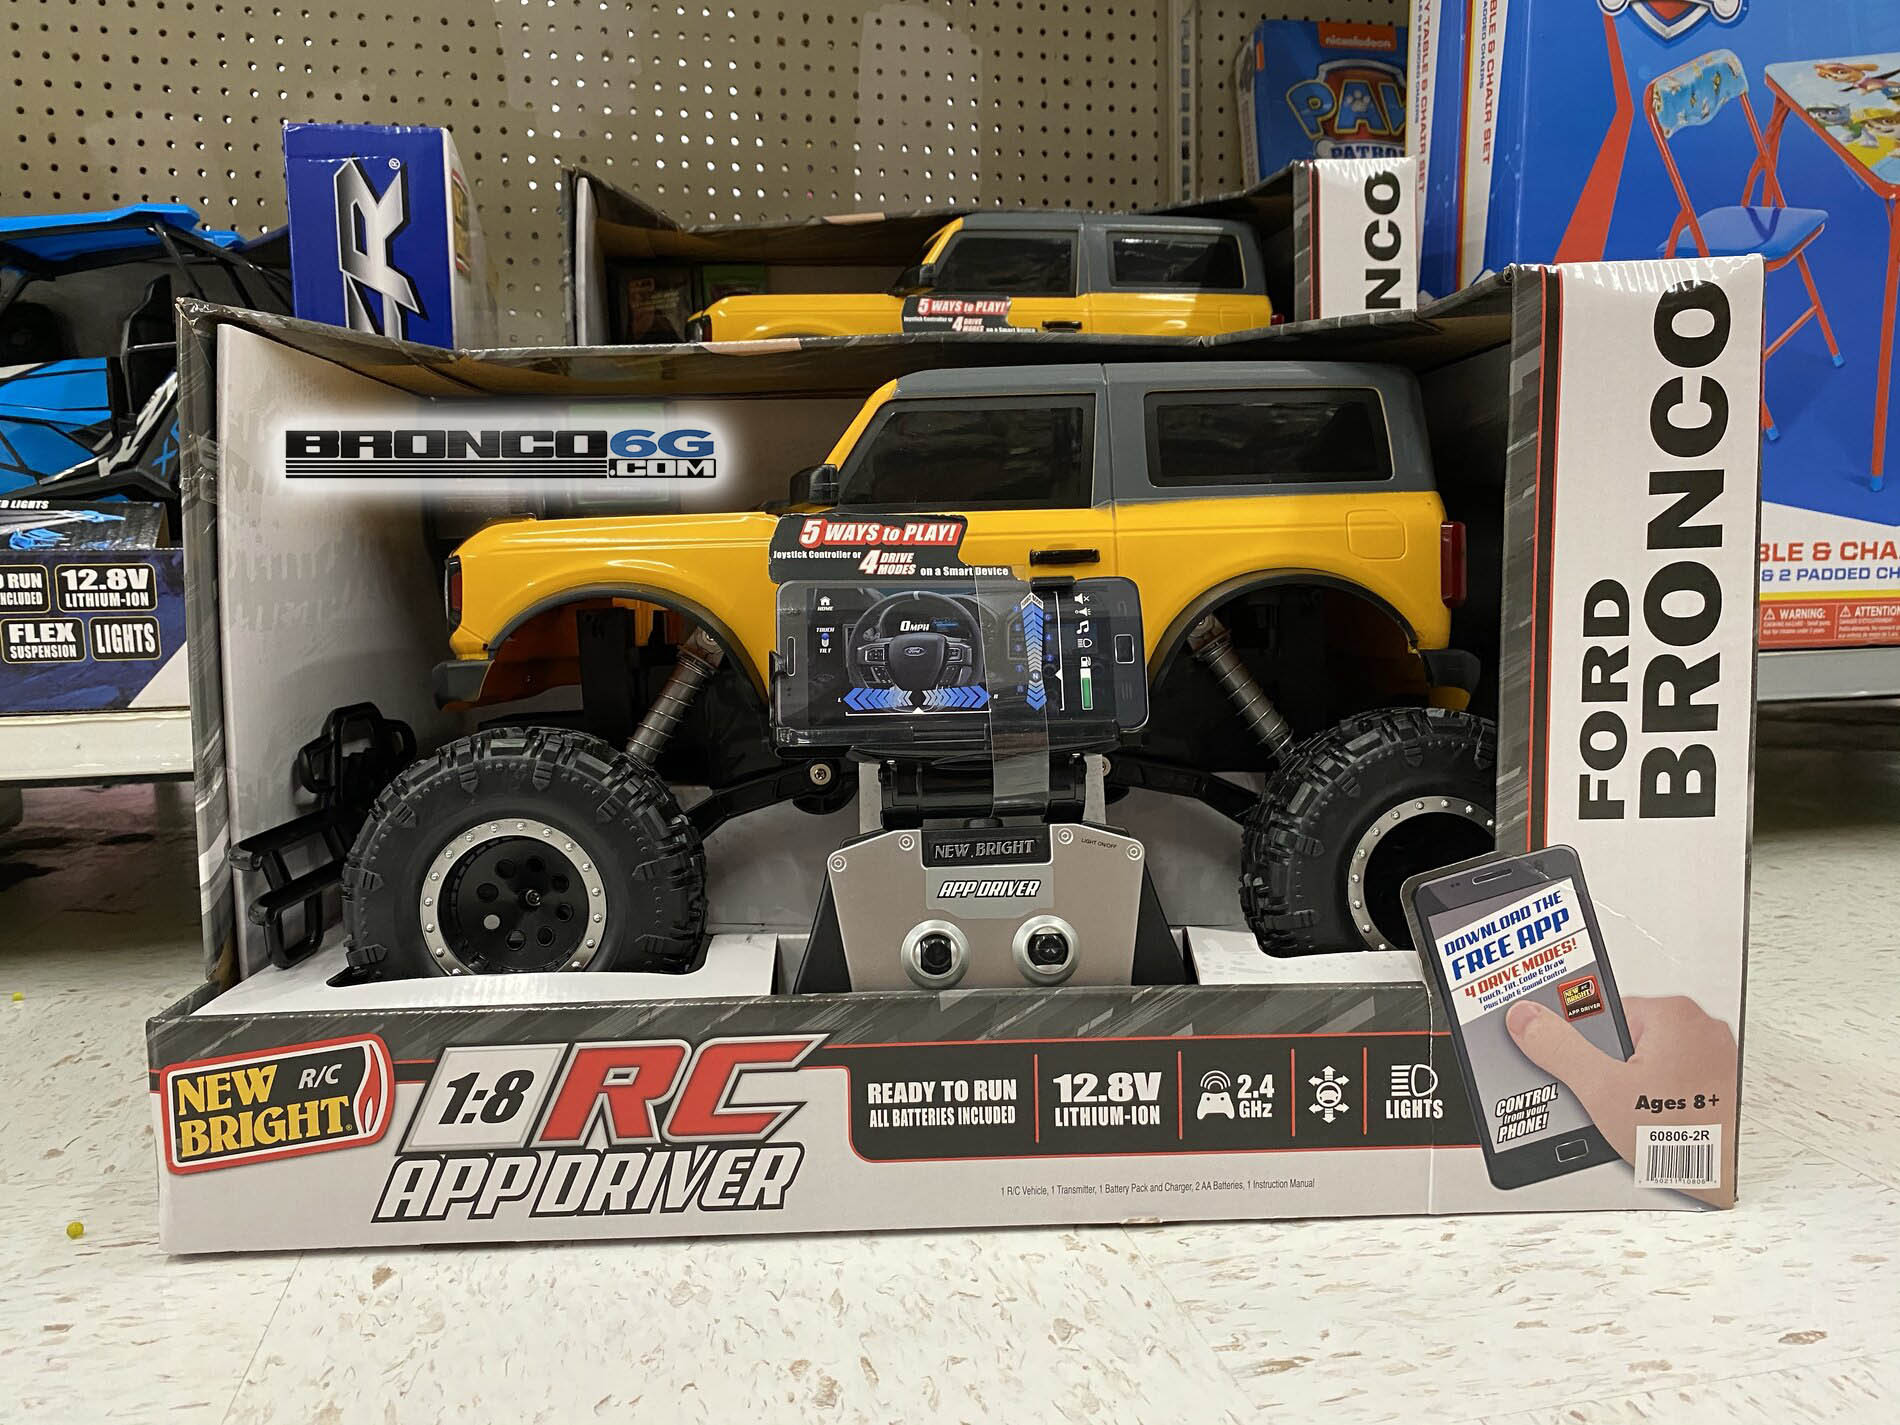 2021 Ford Bronco RC remote control car 2.jpg